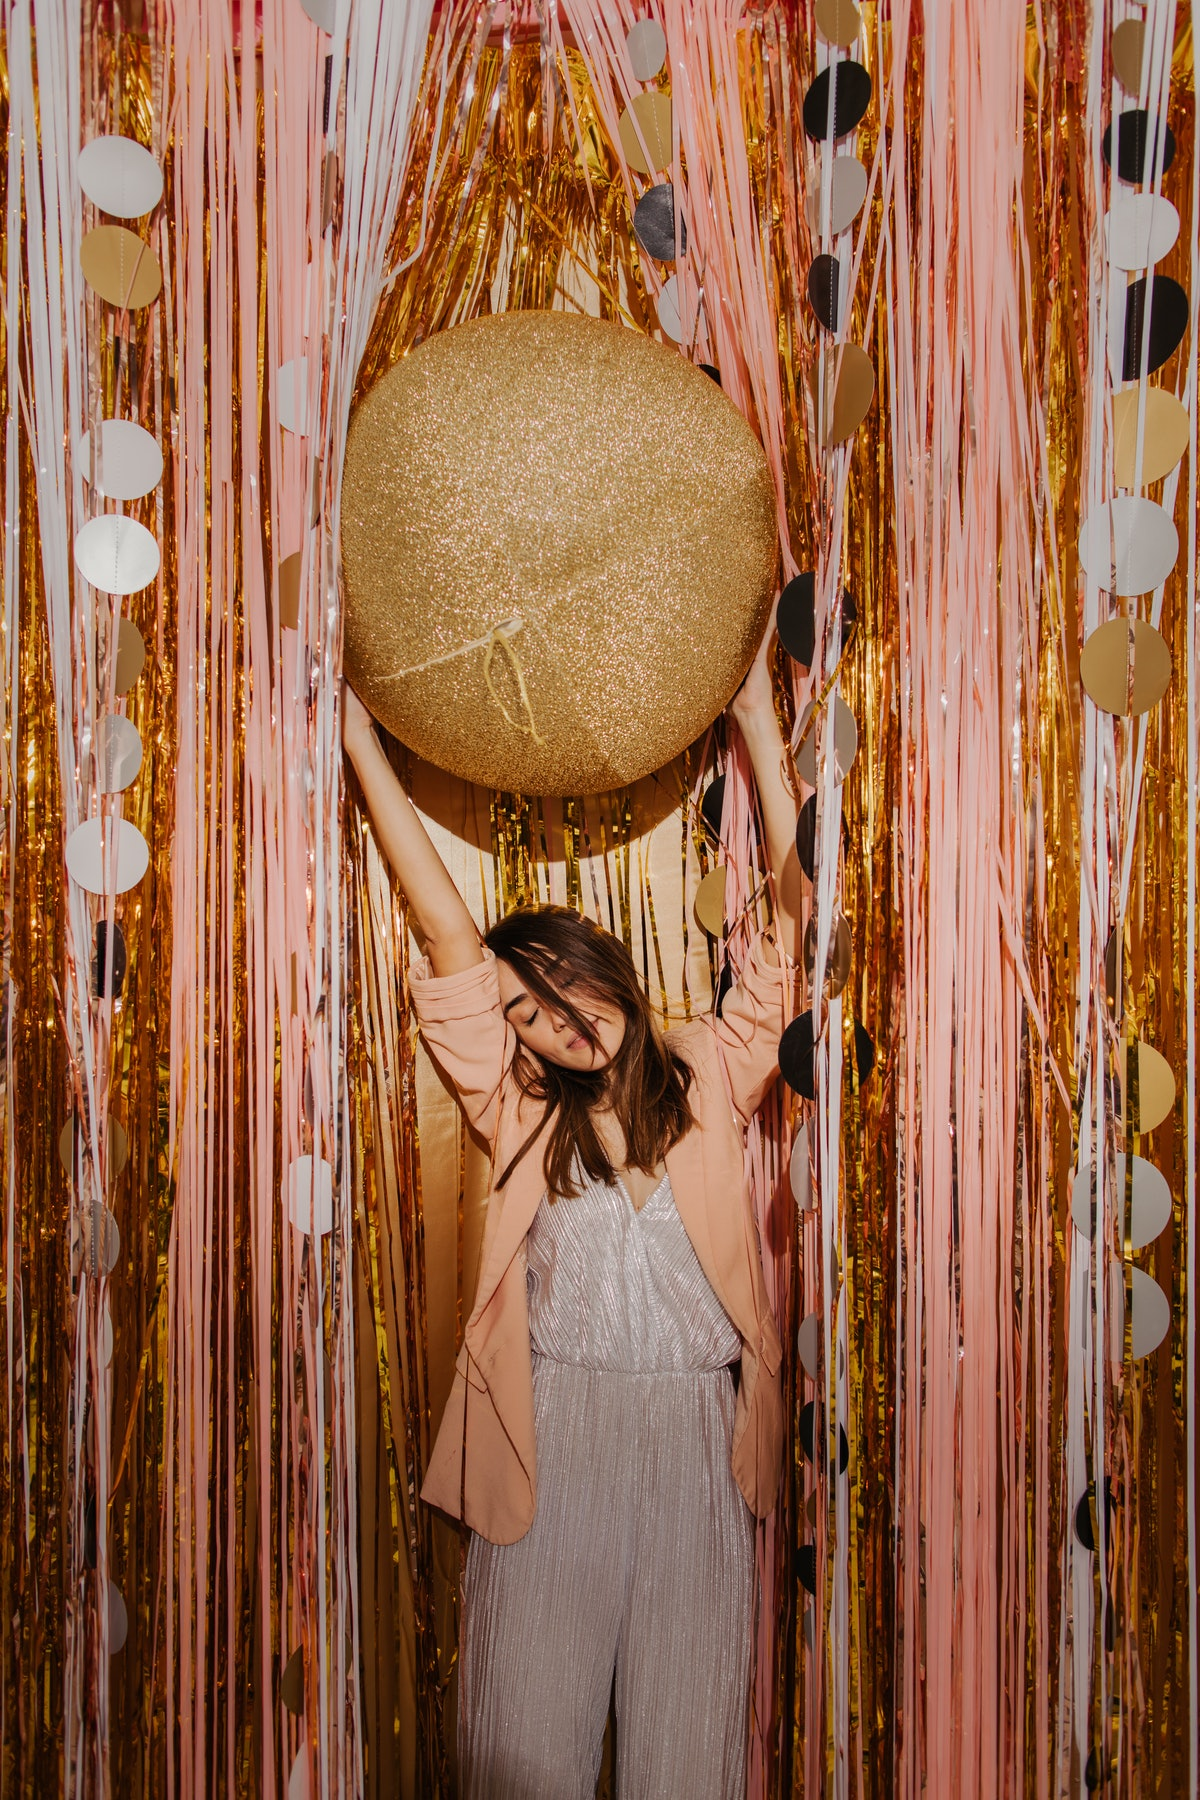 A young woman wears a sparkly jumpsuit, and stands next to pink and gold streamers while holding a glittery ball above her head.